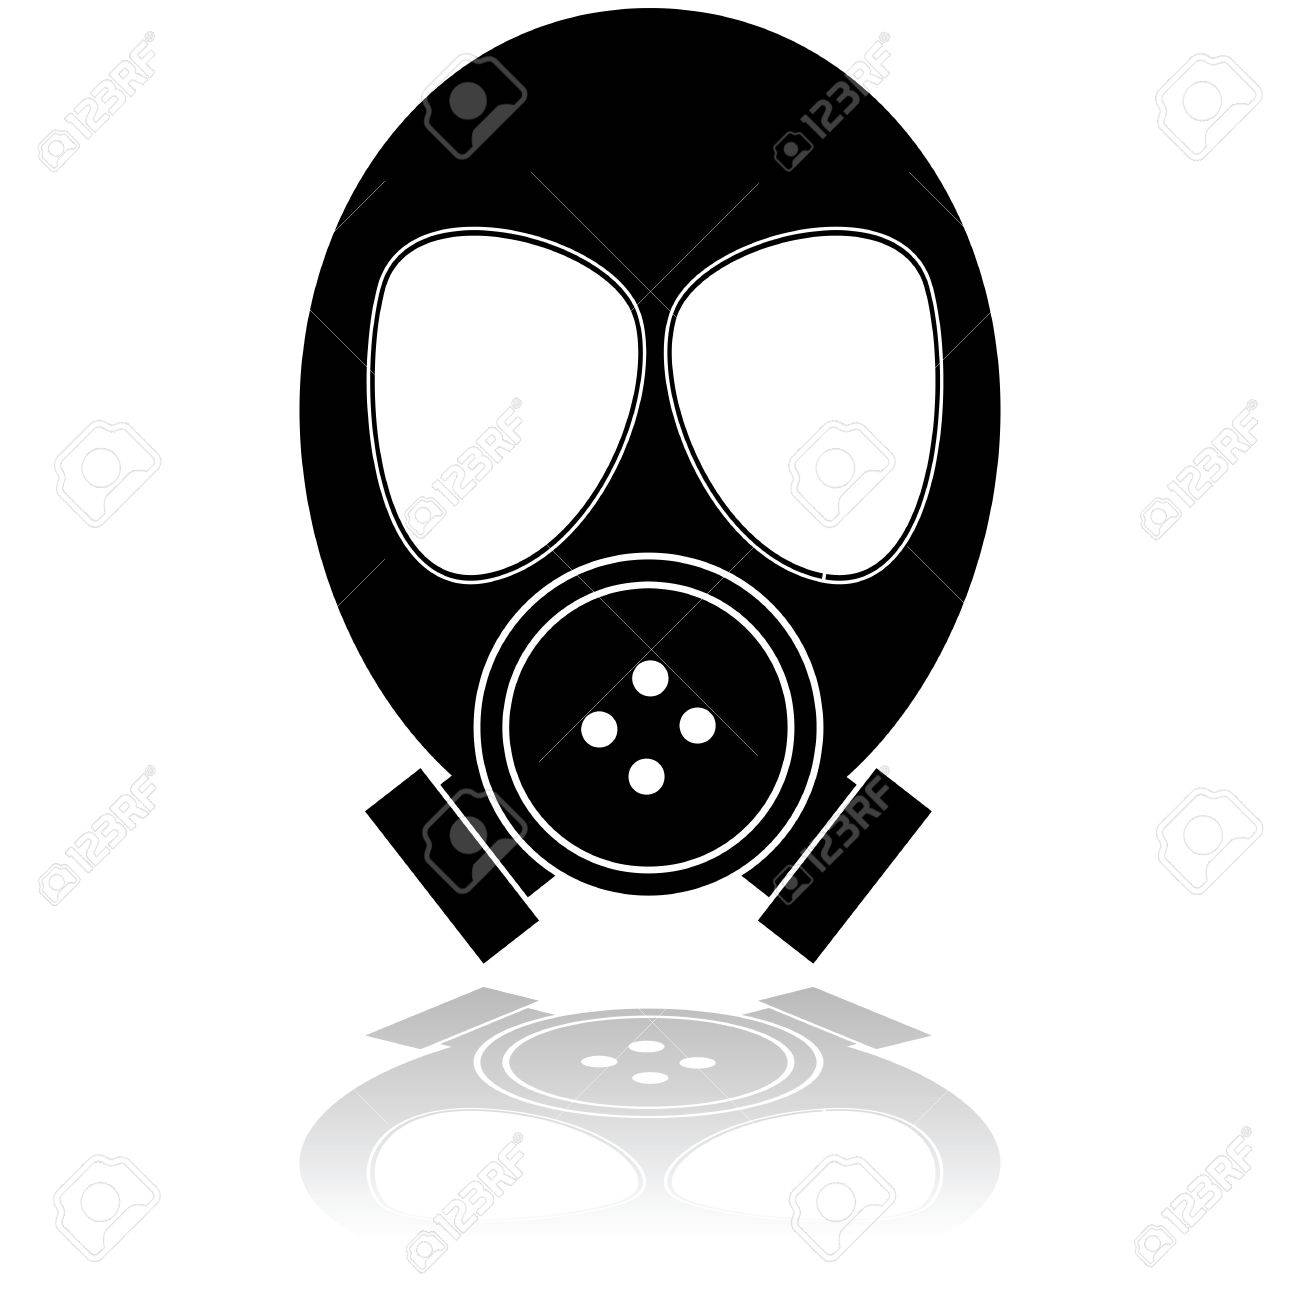 Icon illustration showing a mask used for protection against poisonous gas Stock Vector - 26159871